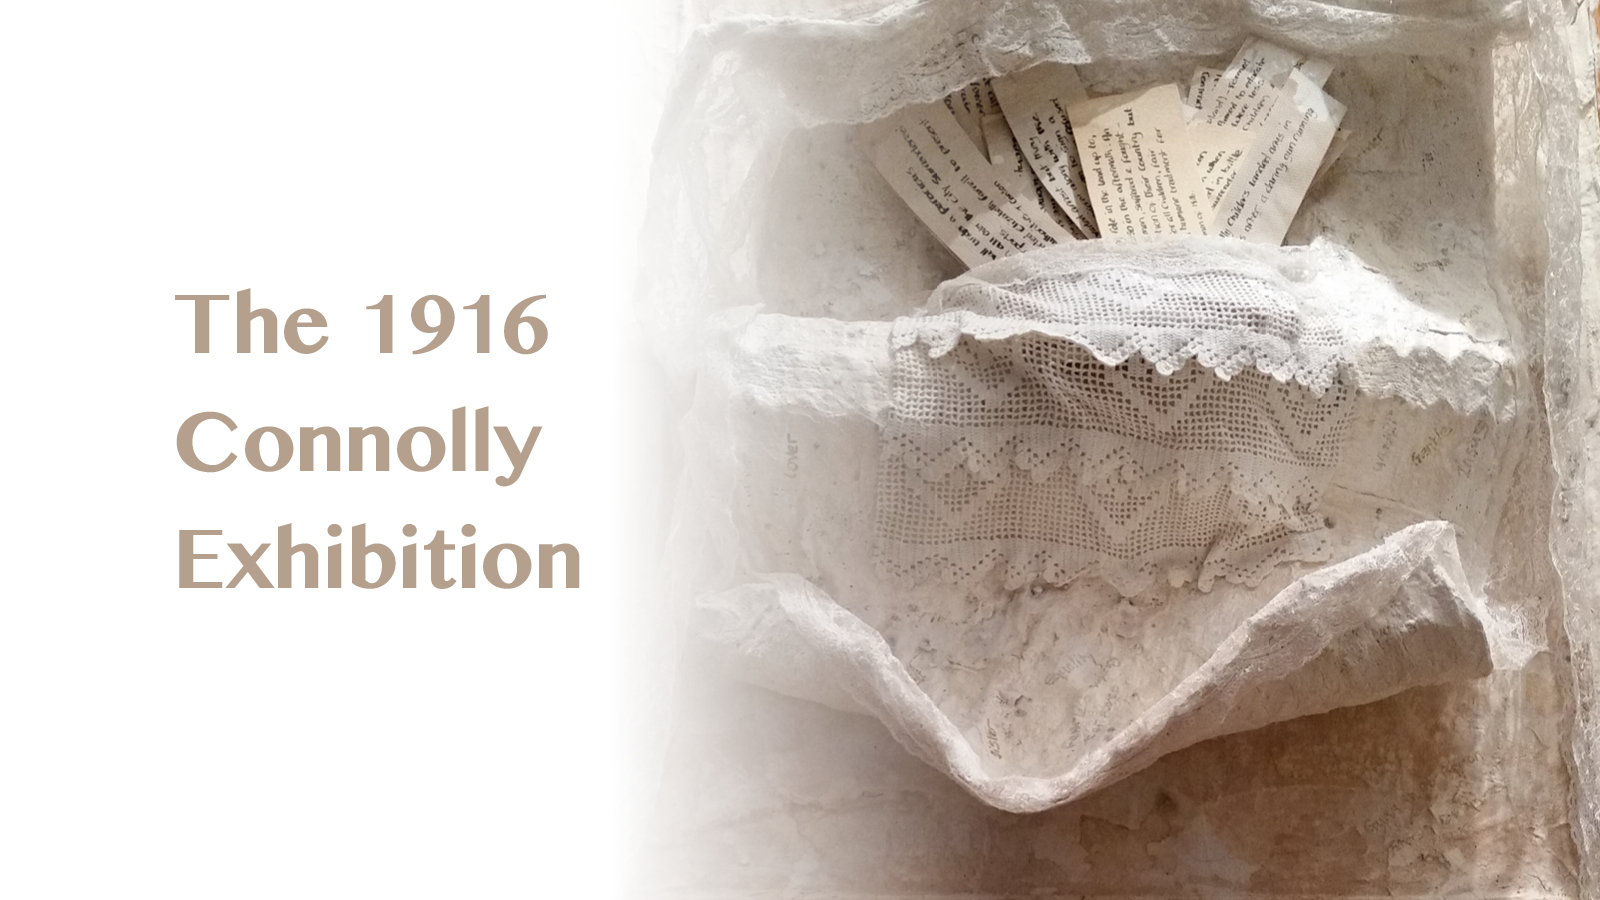 Exhibition Image - 1916 Connolly